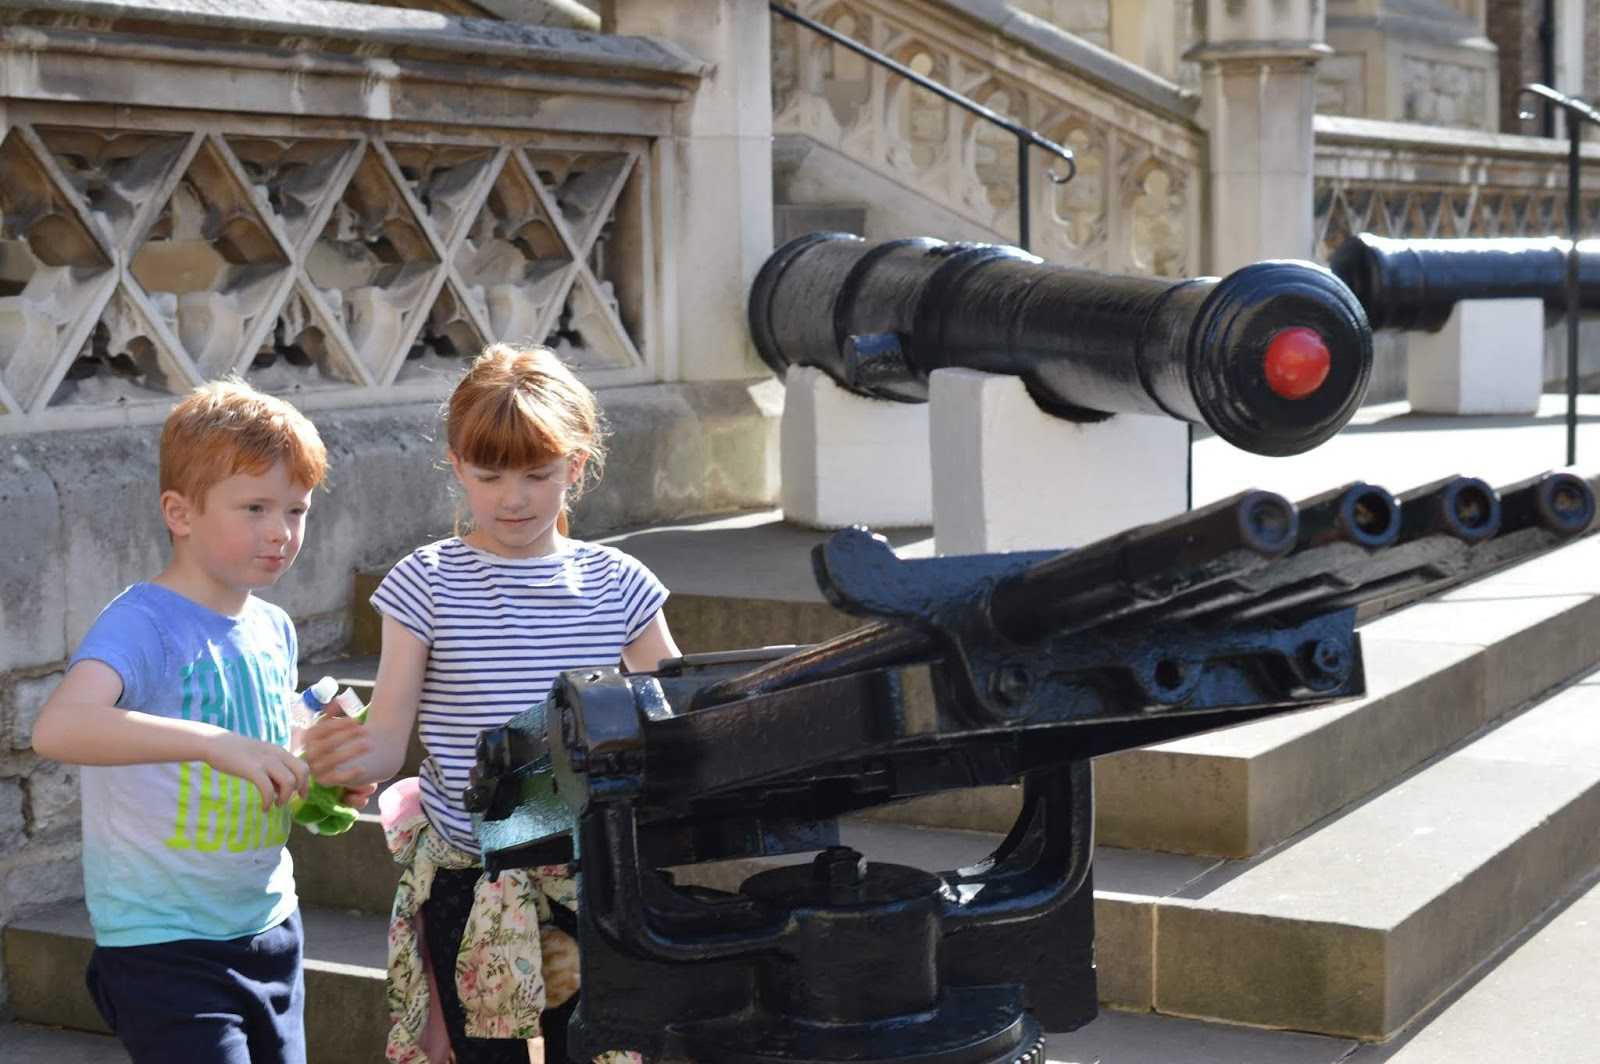 The LNER Family Return Ticket Newcastle-London. #OurLNER #FamilyReturn  - cannons at the Tower of London